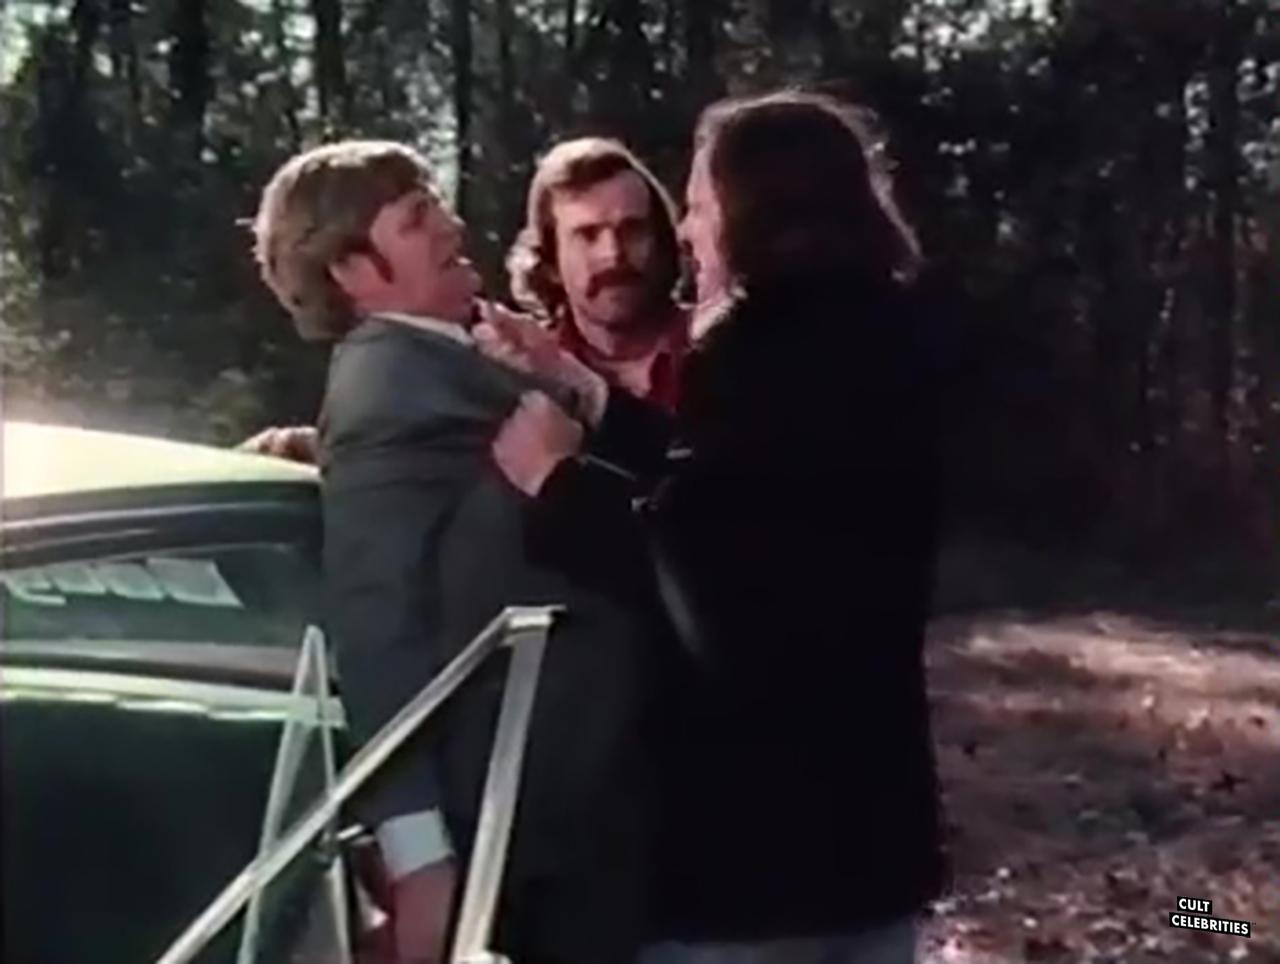 John King III, Tommy Lamey and Herschel Mays in Psycho from Texas (1975)